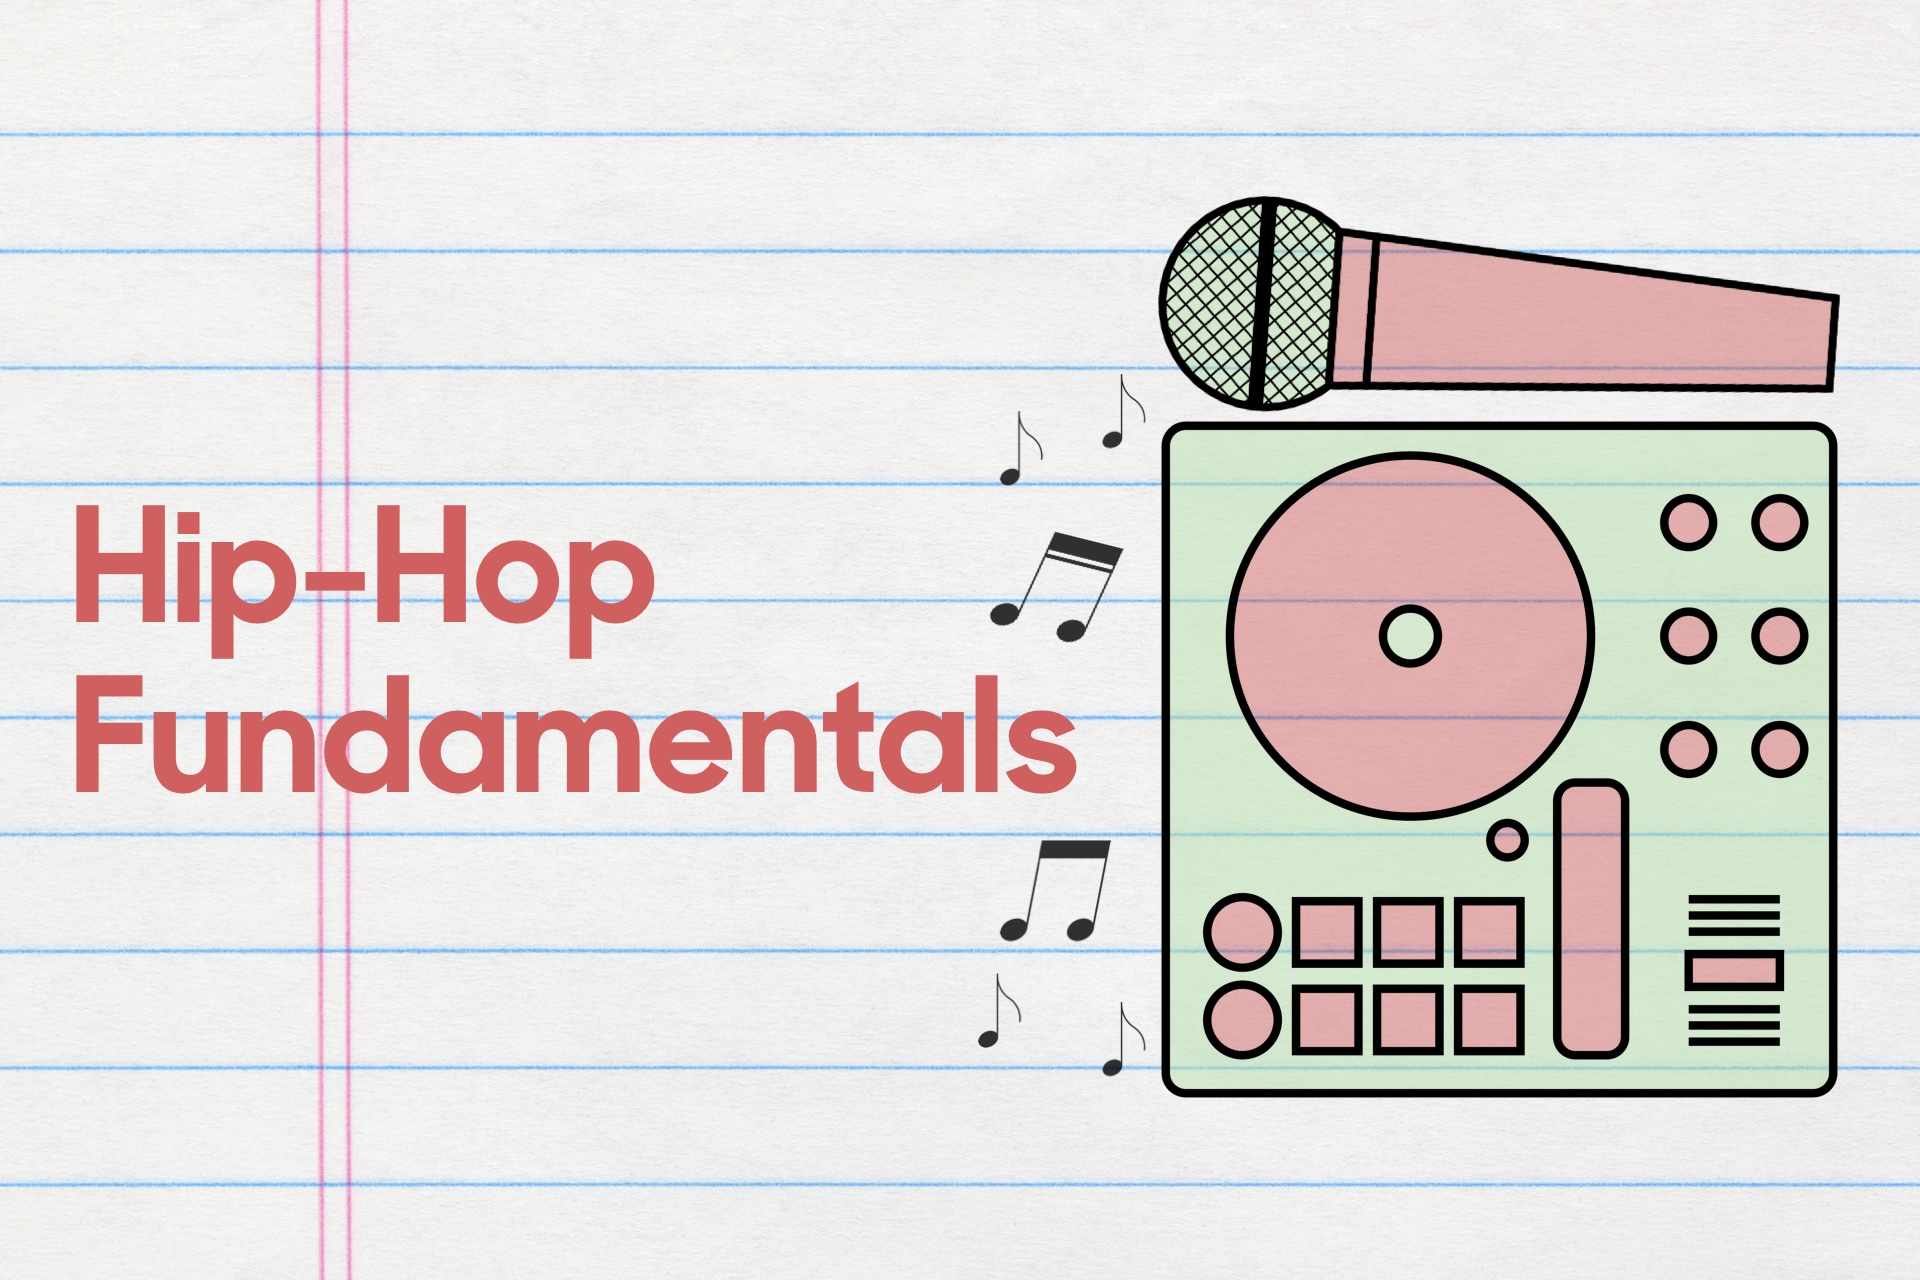 Back_To_School_Hip-Hop_Fundamentals.jpg